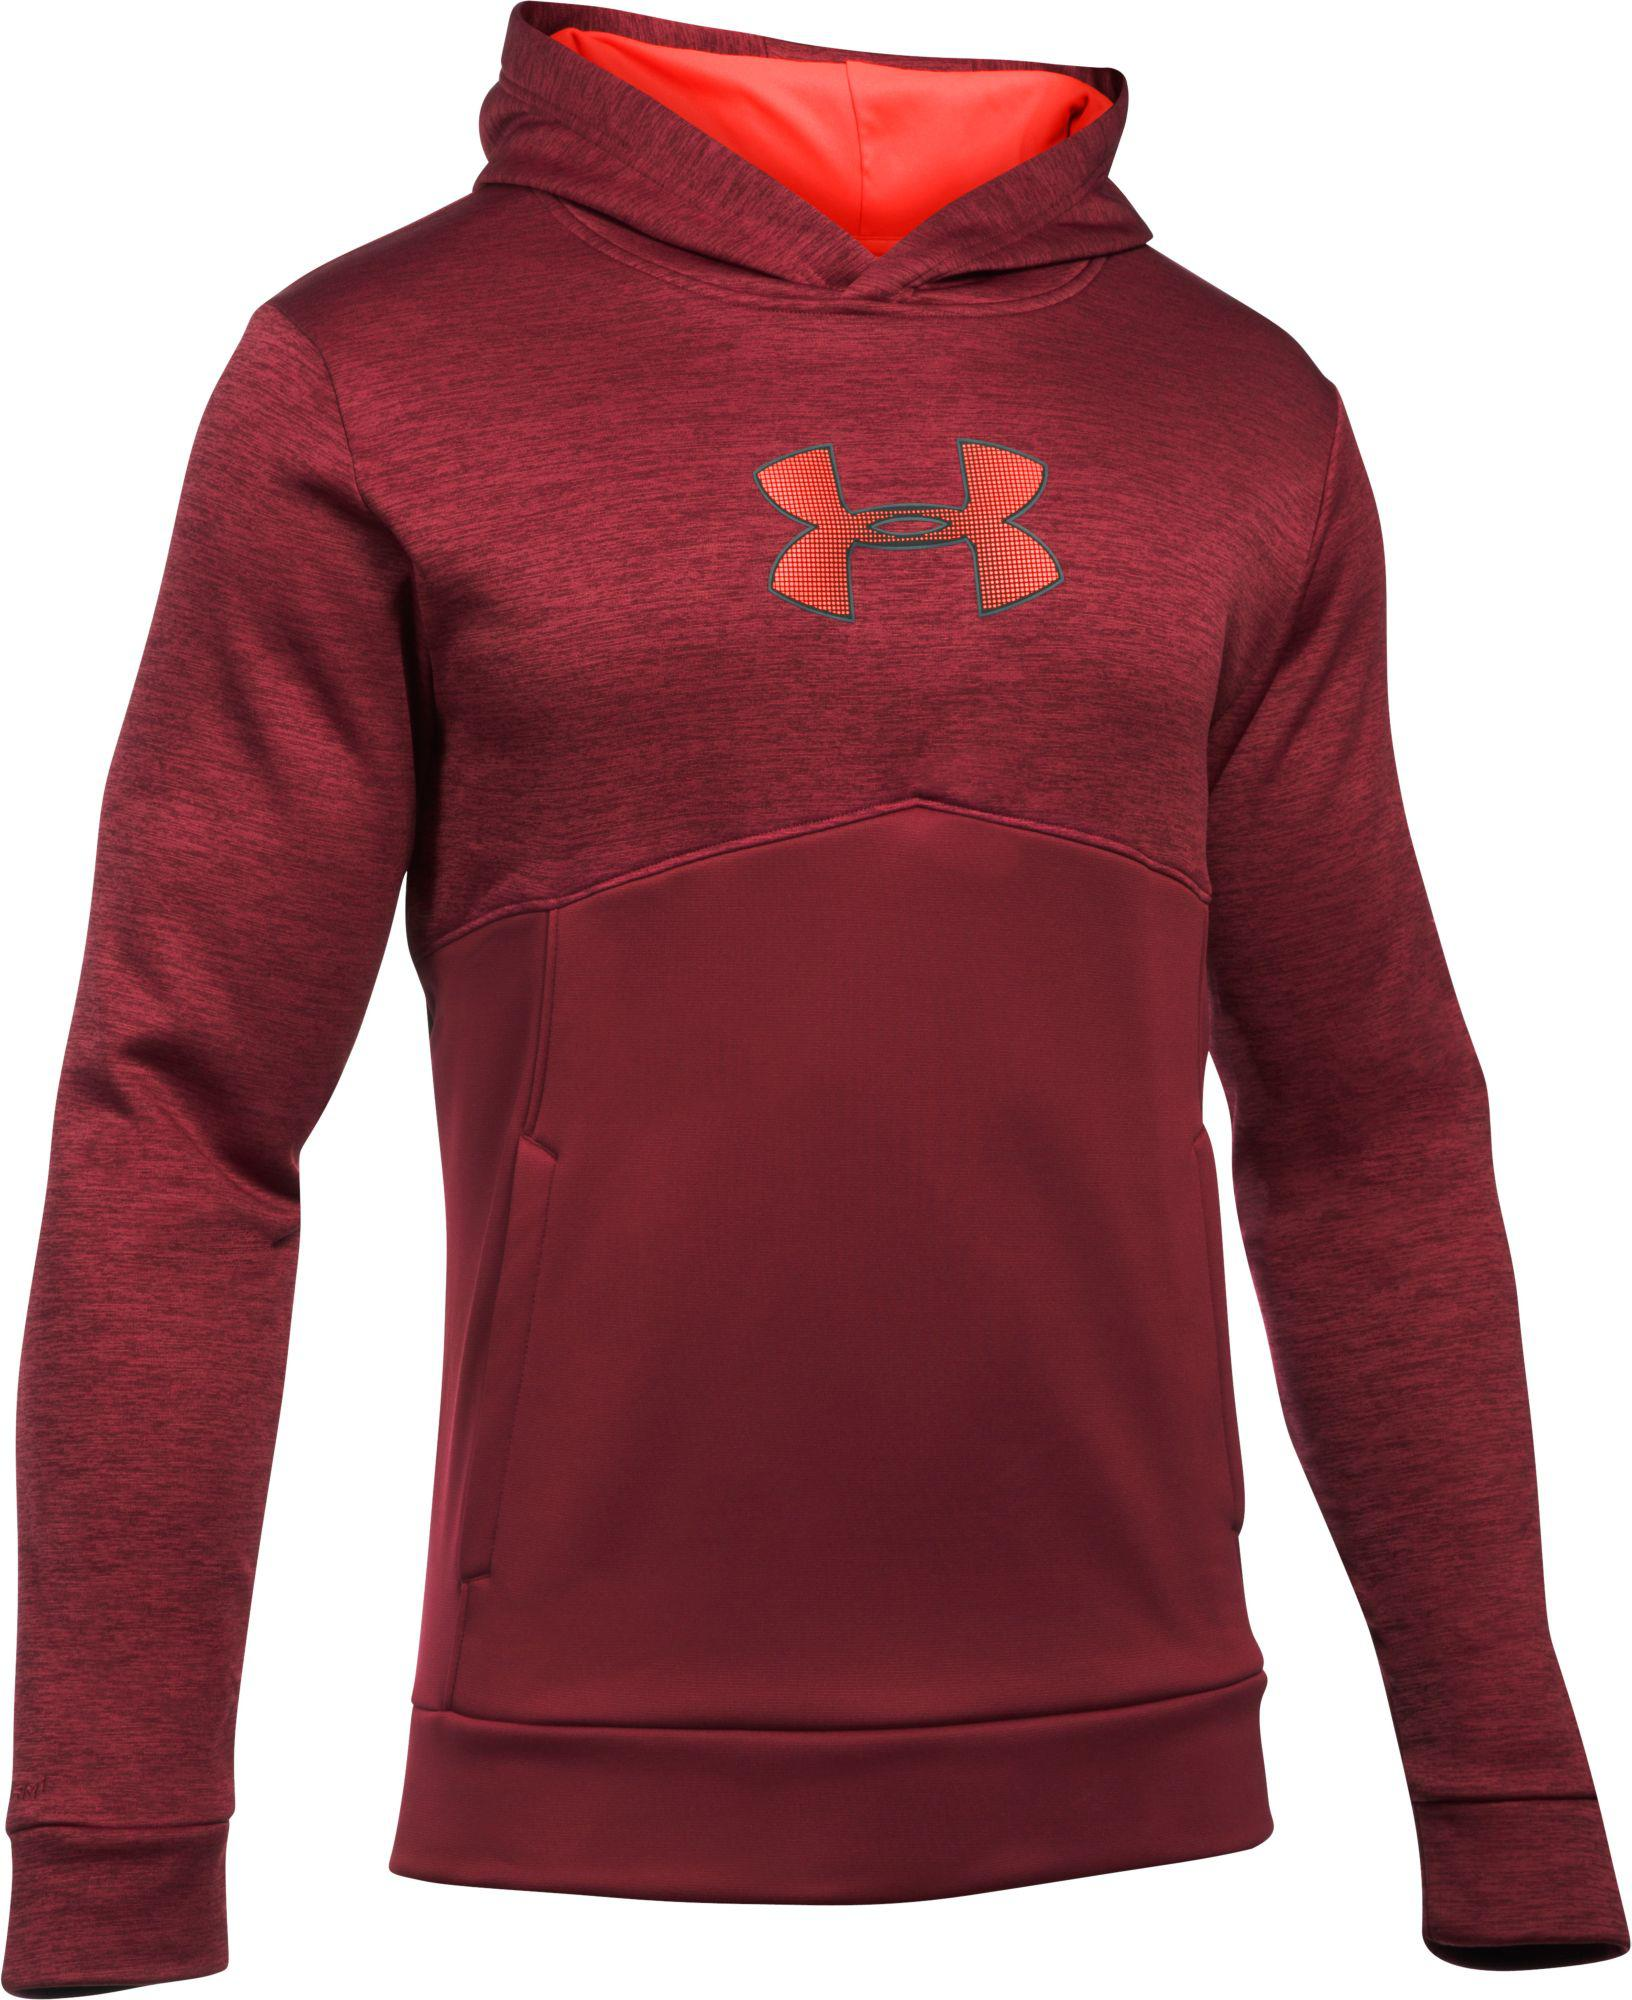 0f40b8f76 Under Armour Storm Armour Fleece Logo Twist Hoodie in Red for Men - Lyst